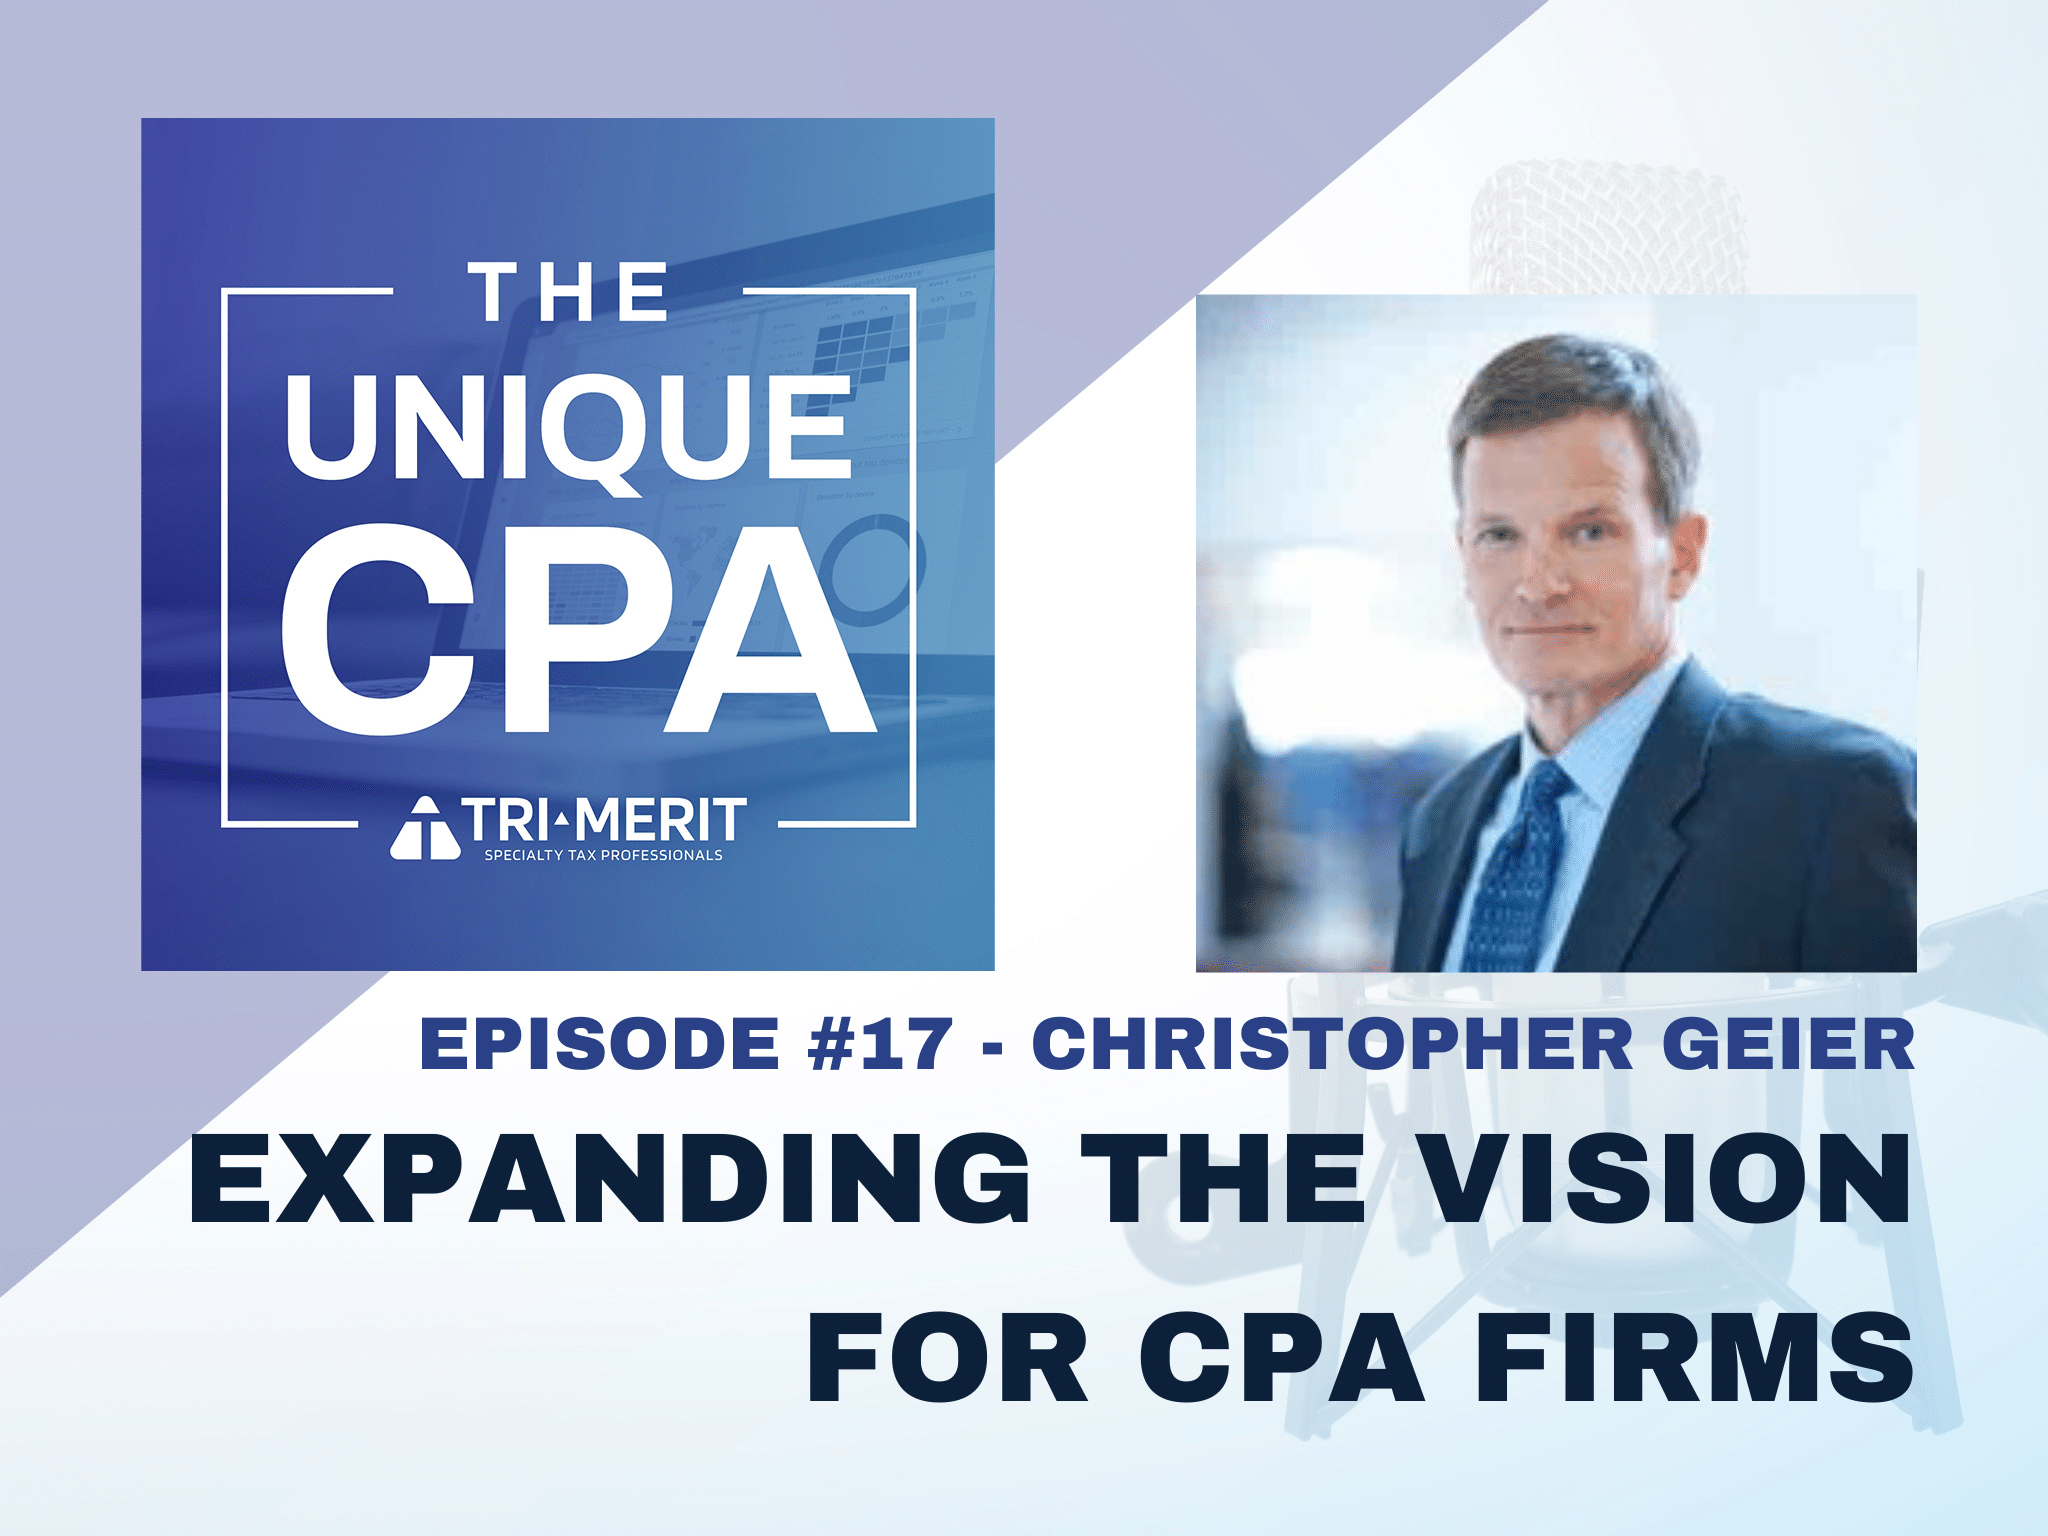 The Unique CPA Feature Image Ep 17 Chris Geier - Expanding the Vision for CPA Firms - Tri-Merit